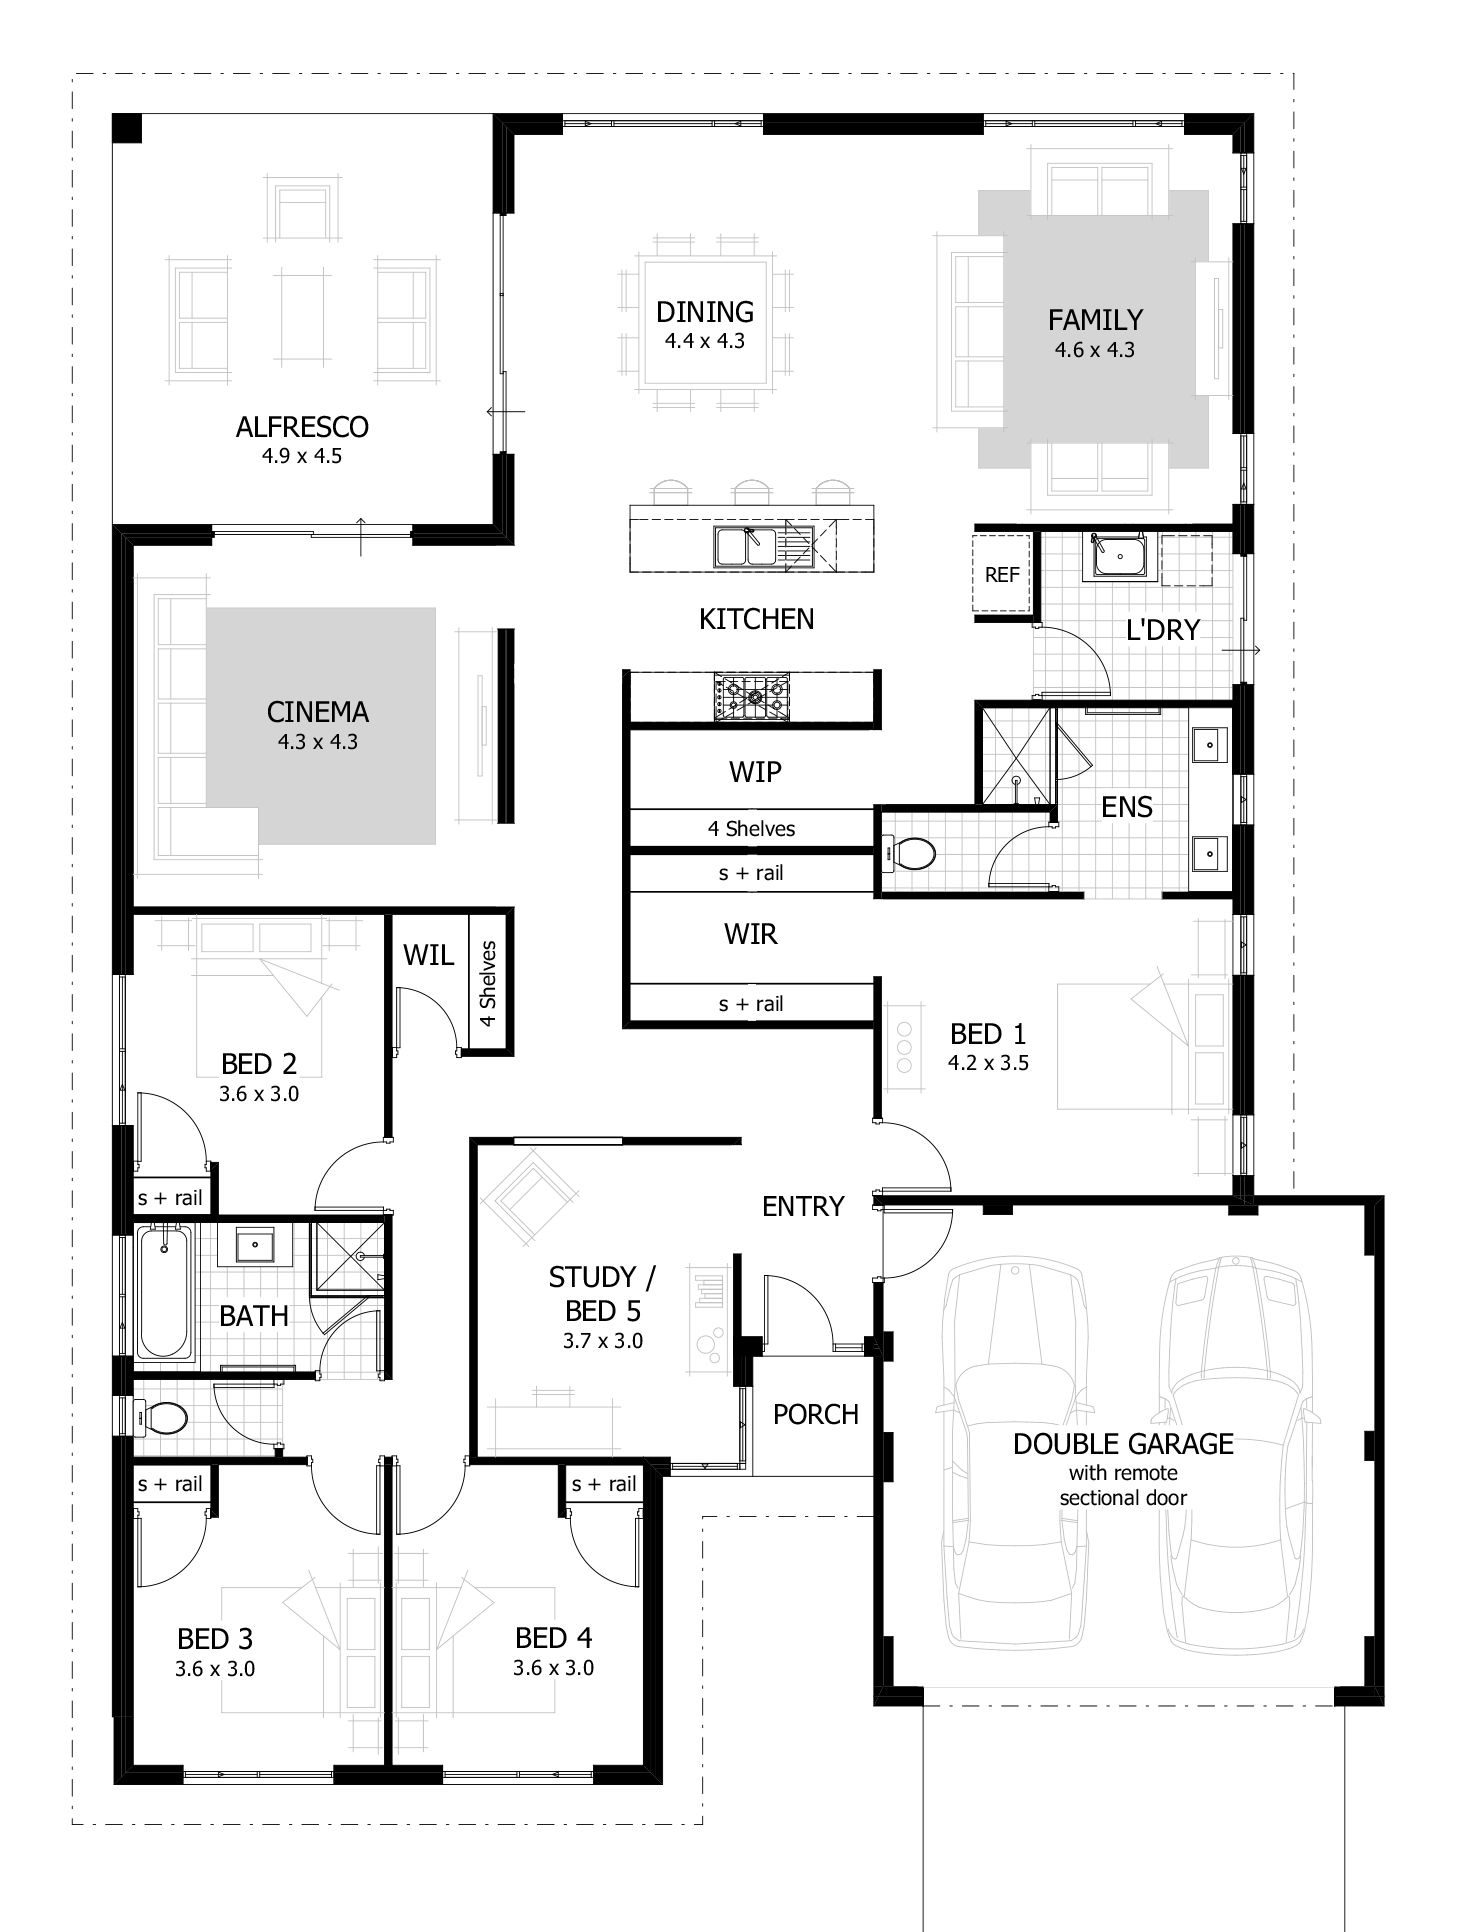 Home Design Plans With Photos In Kerala Free House Plans Floor Plan Design Four Bedroom House Plans